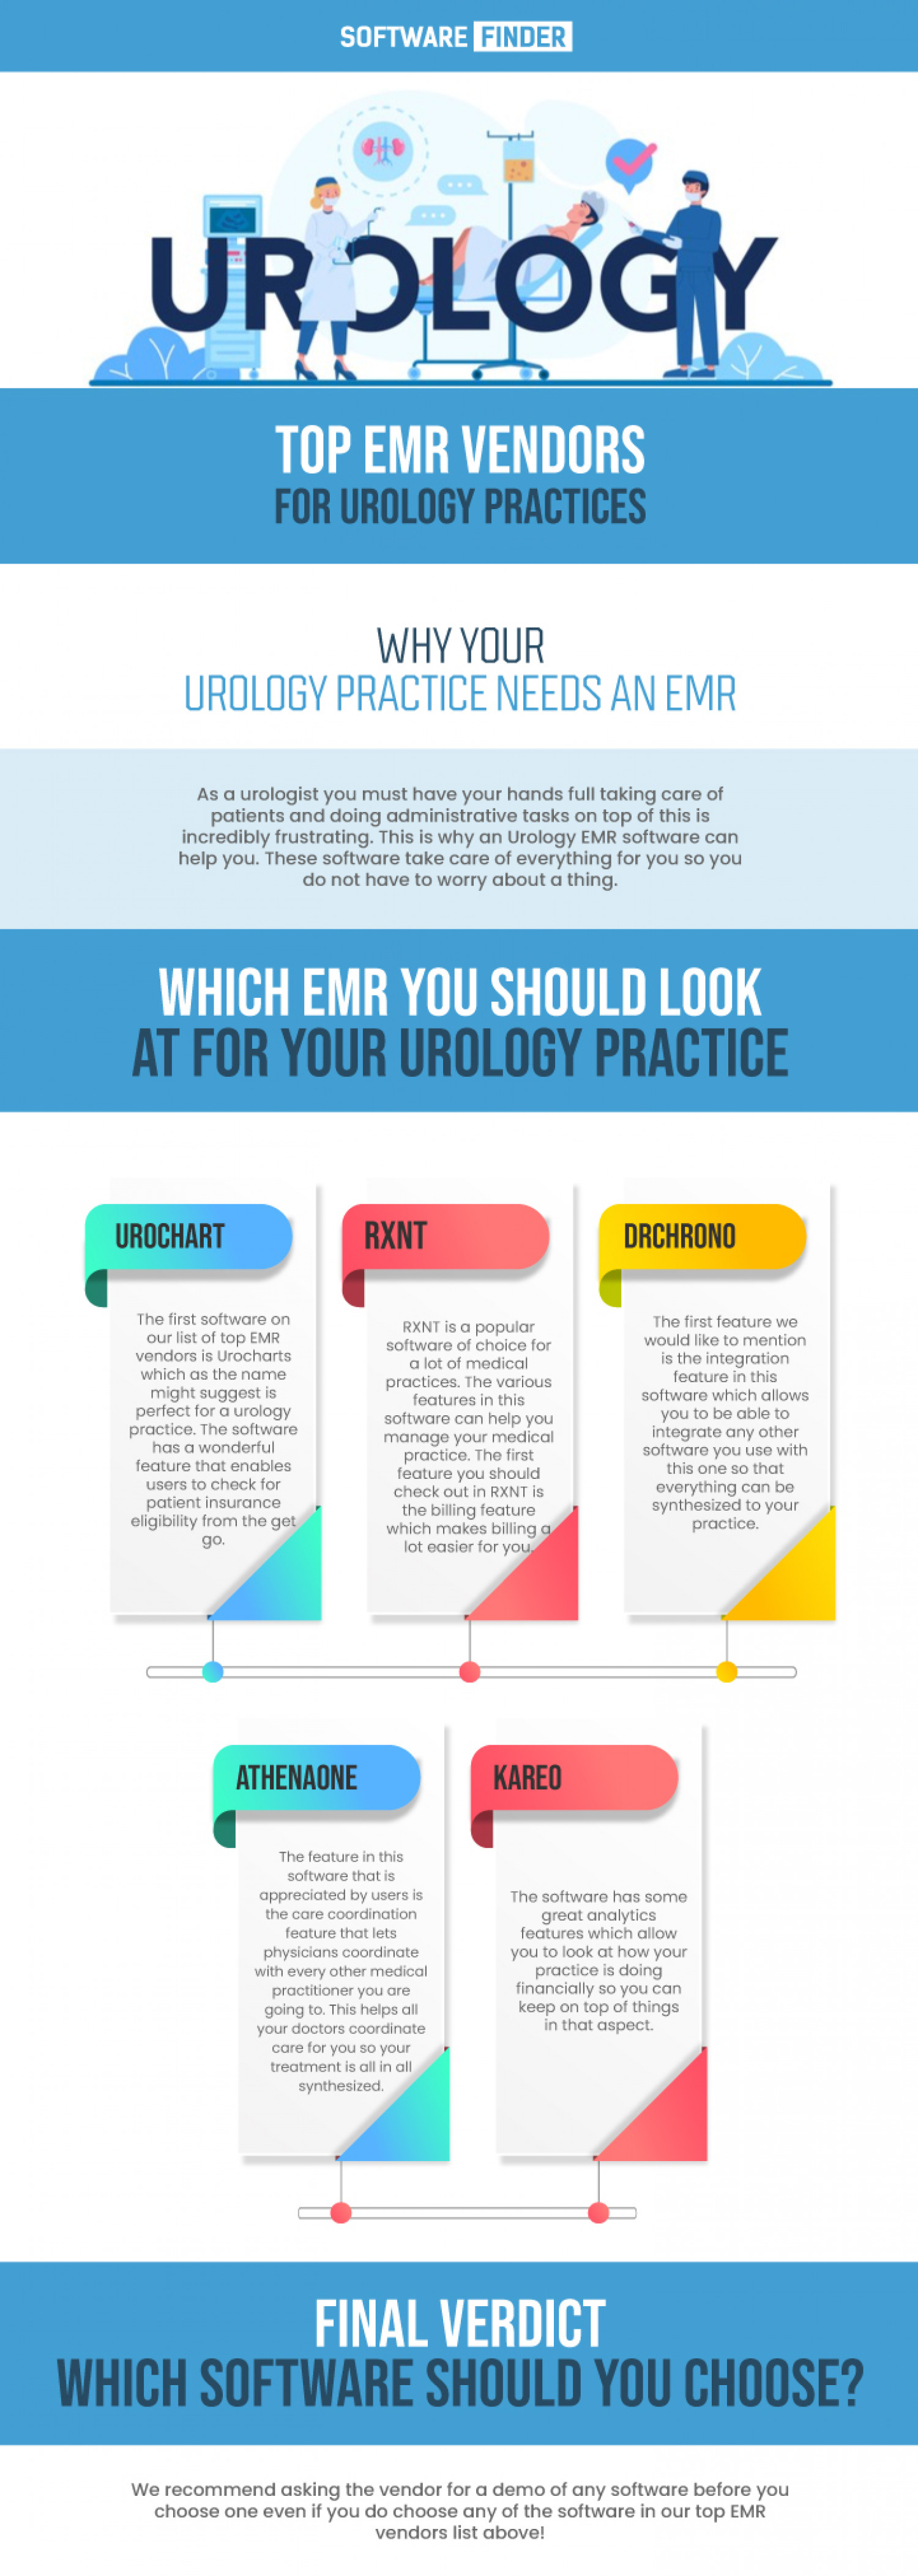 Top EMR Vendors For Urology Practices Infographic